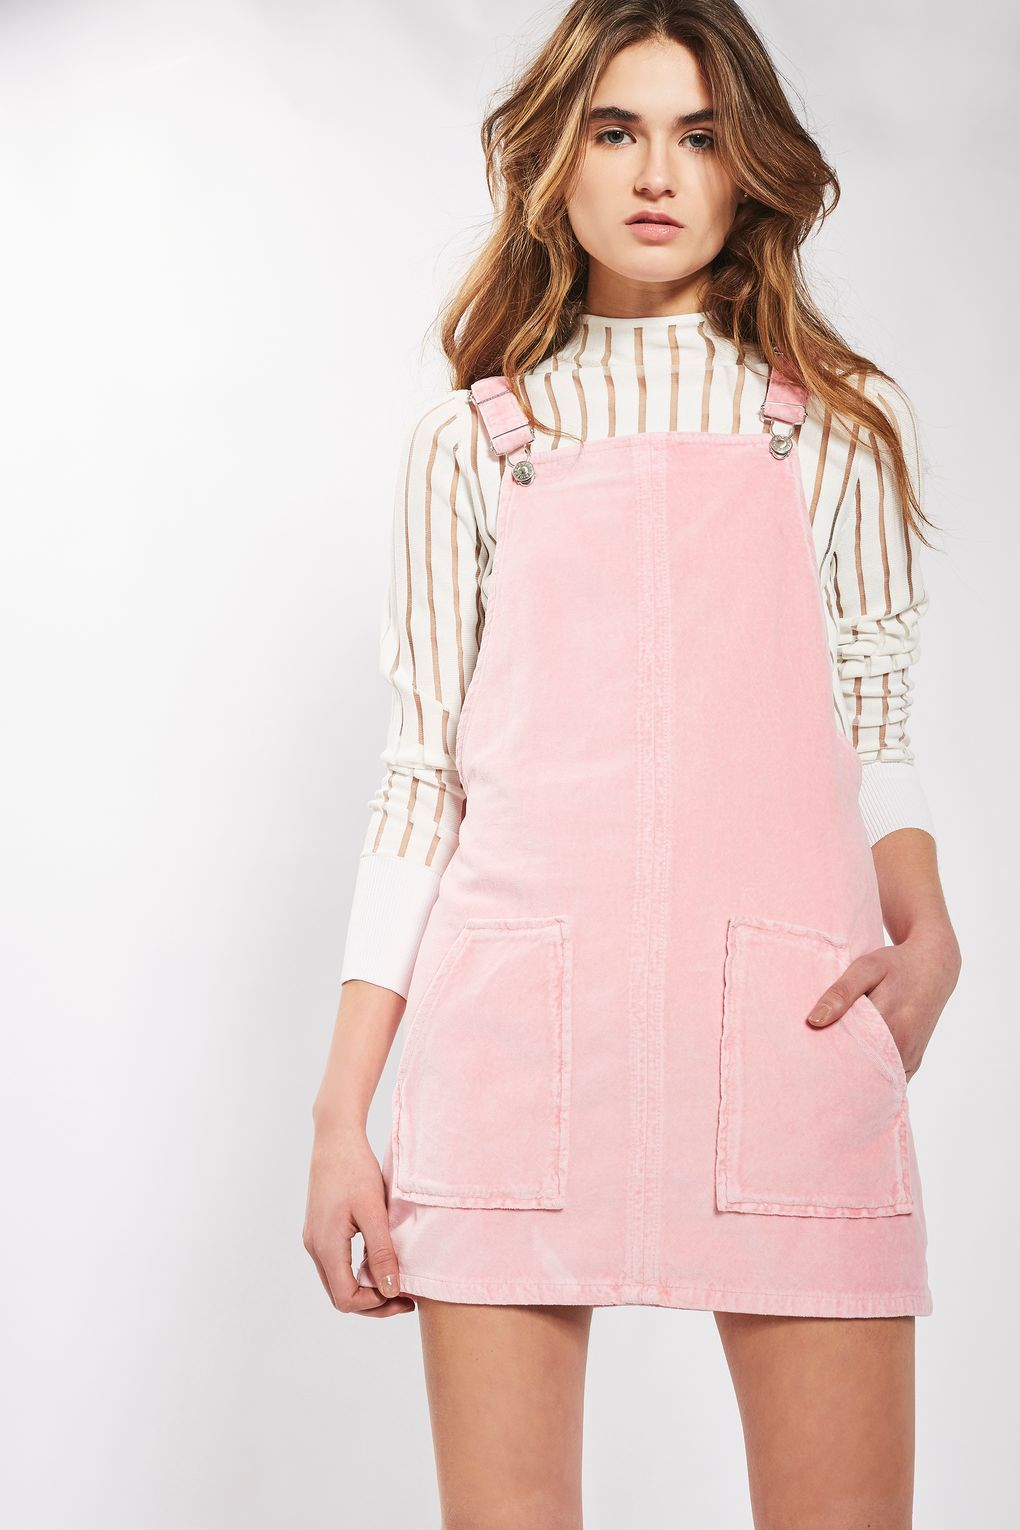 Jumper Dress Overall Jean TOPSHOP Moto